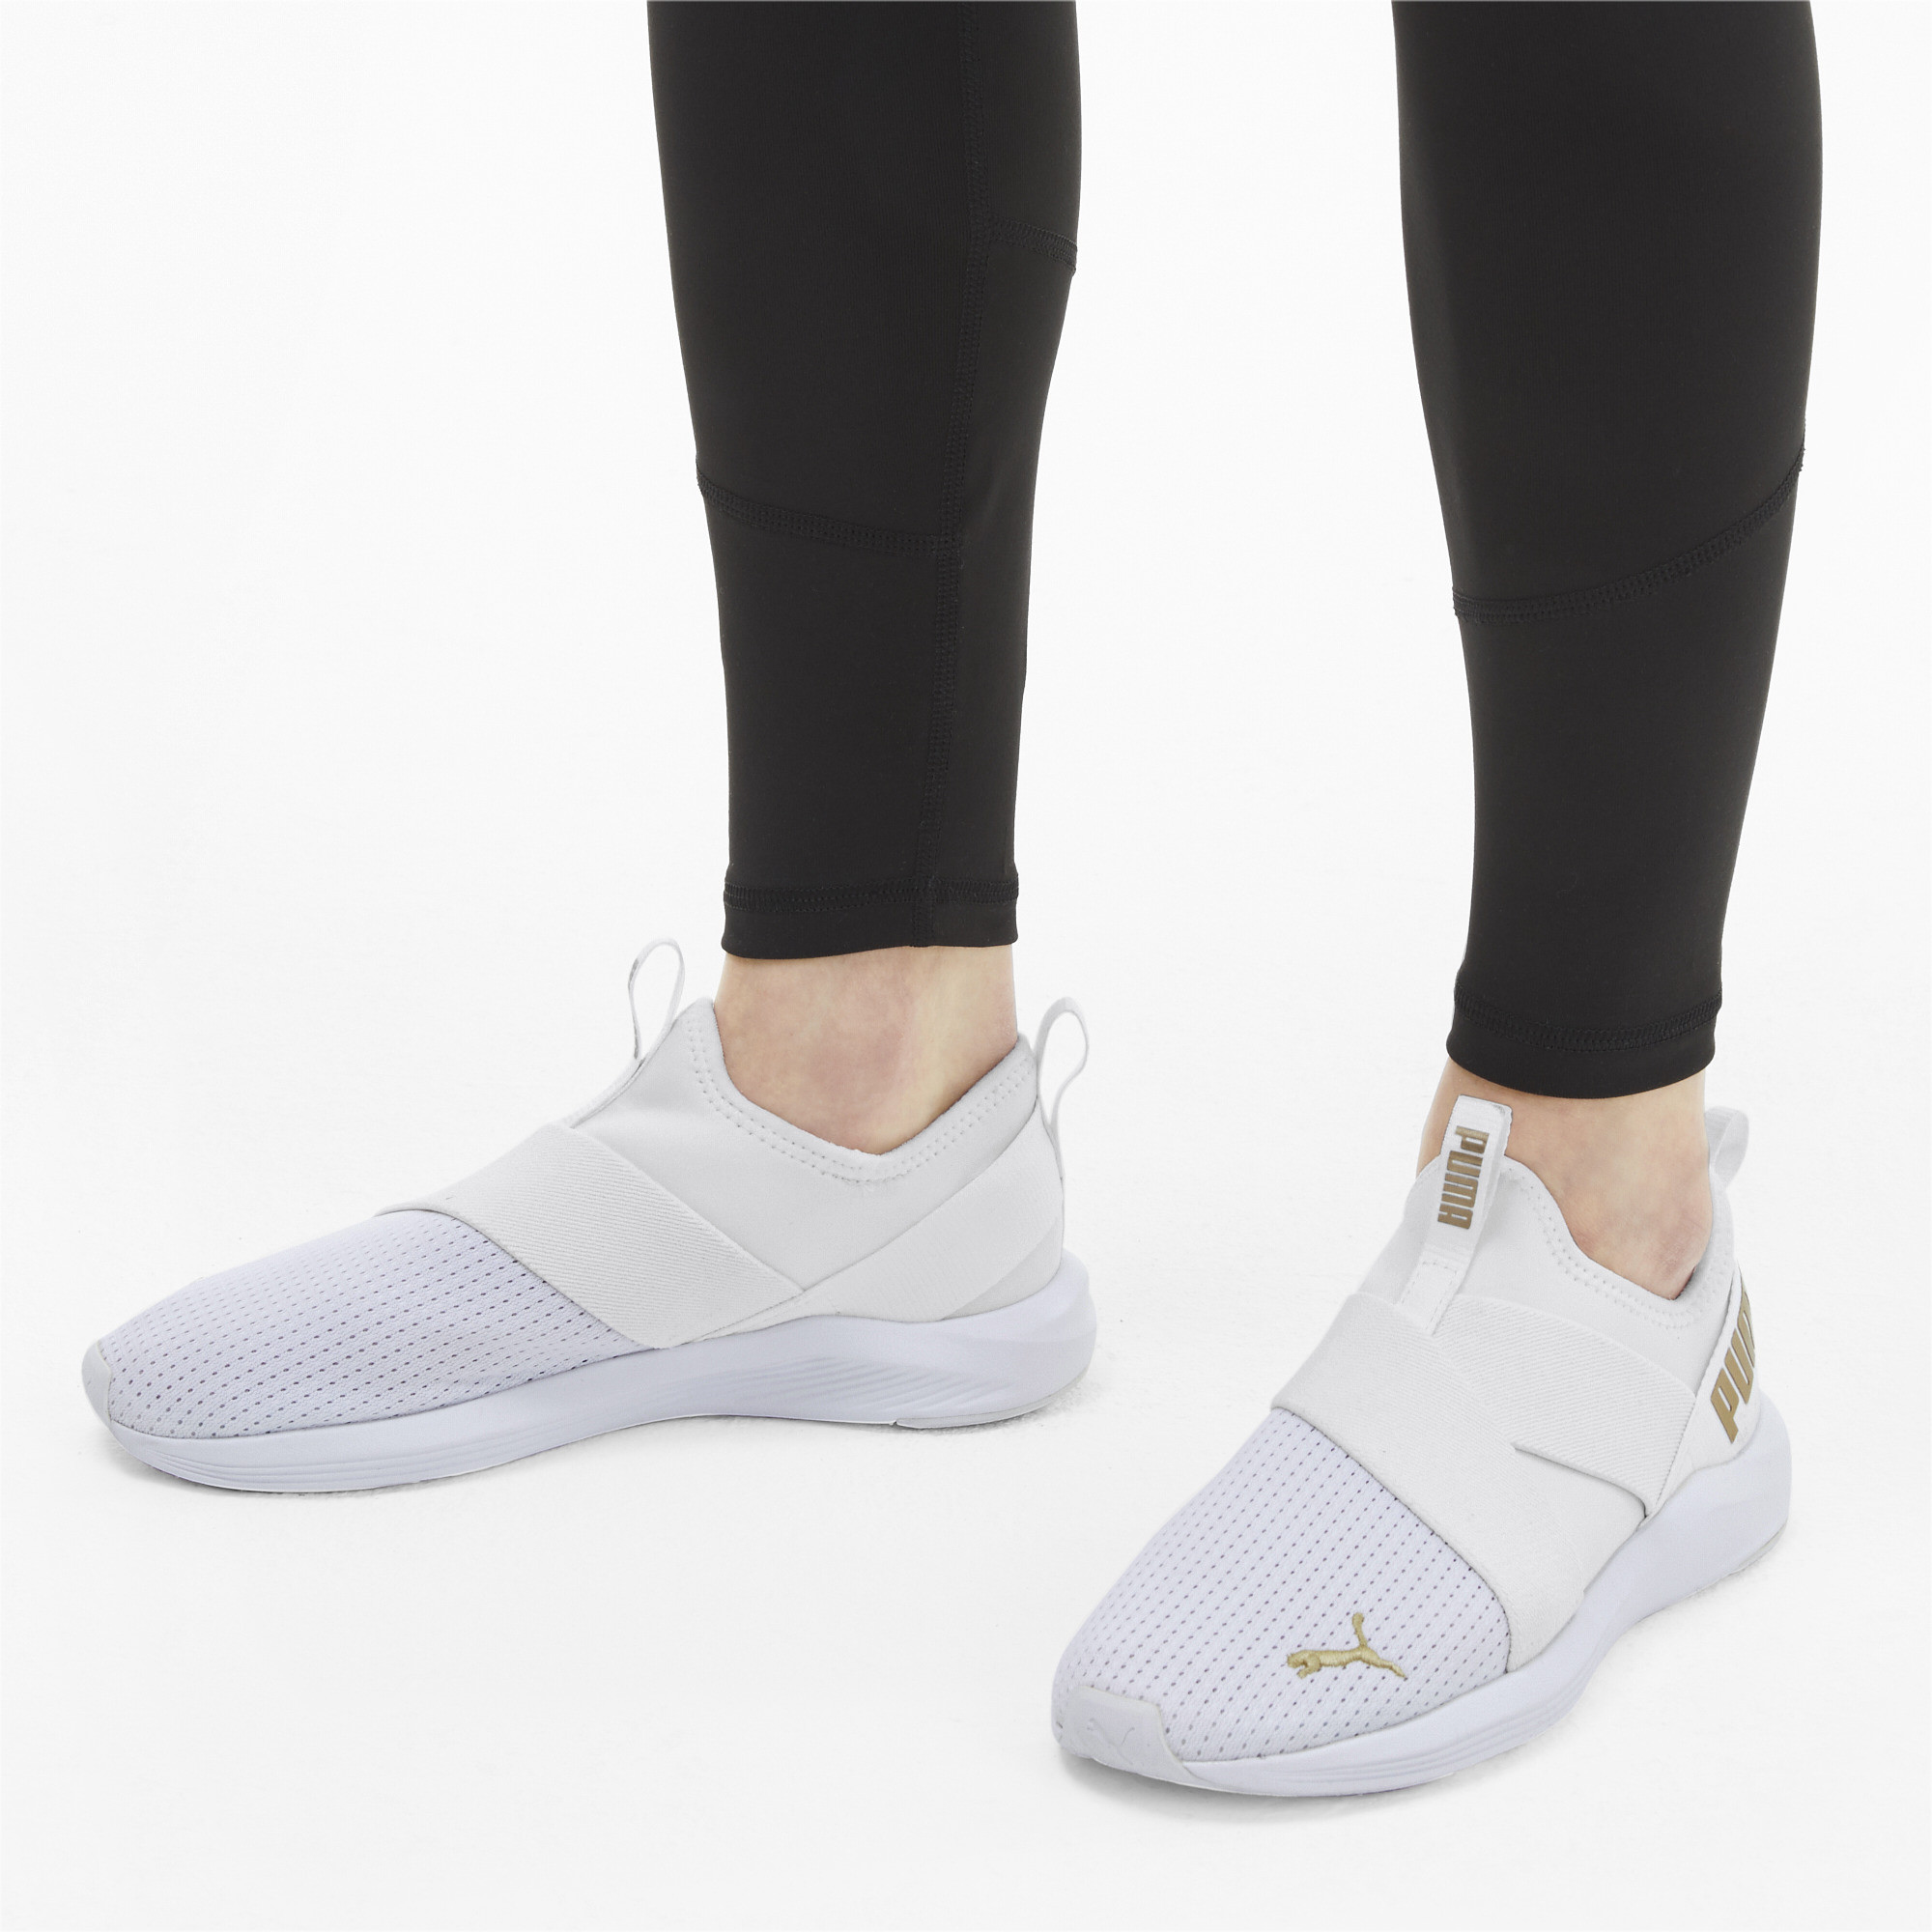 PUMA-Women-039-s-Prowl-Slip-On-Training-Shoes thumbnail 12